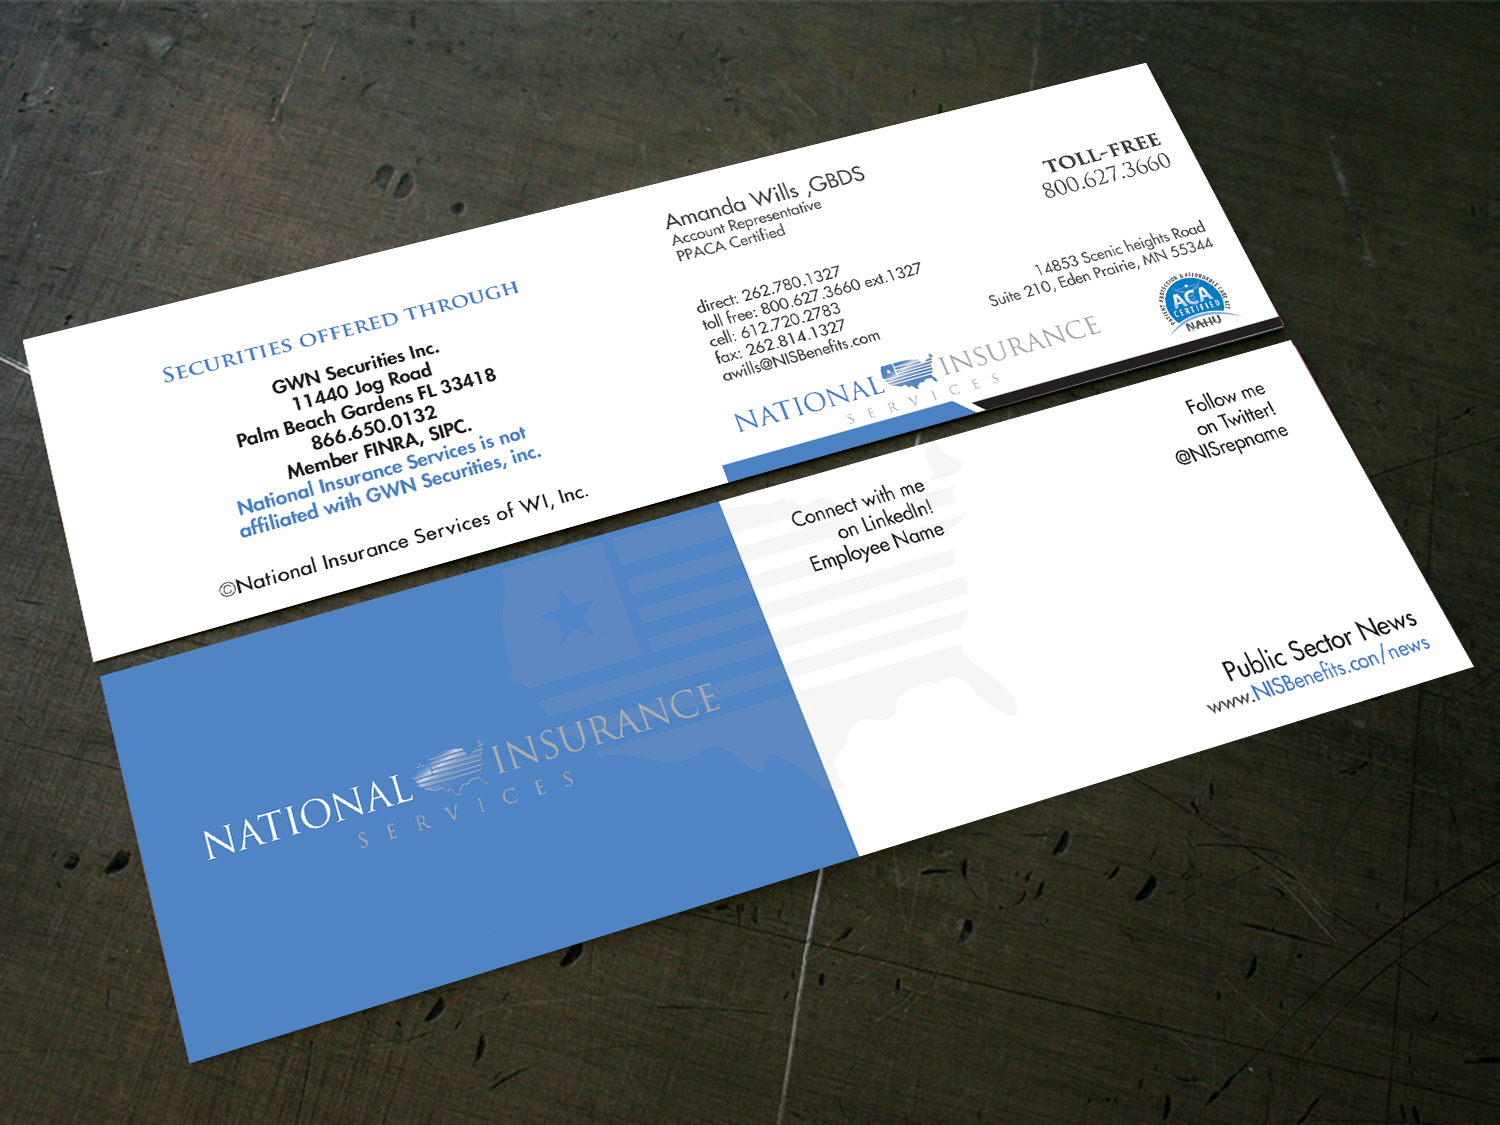 Serious professional insurance business card design for national business card design by nuhanenterprise for national insurance services design 13727682 reheart Gallery